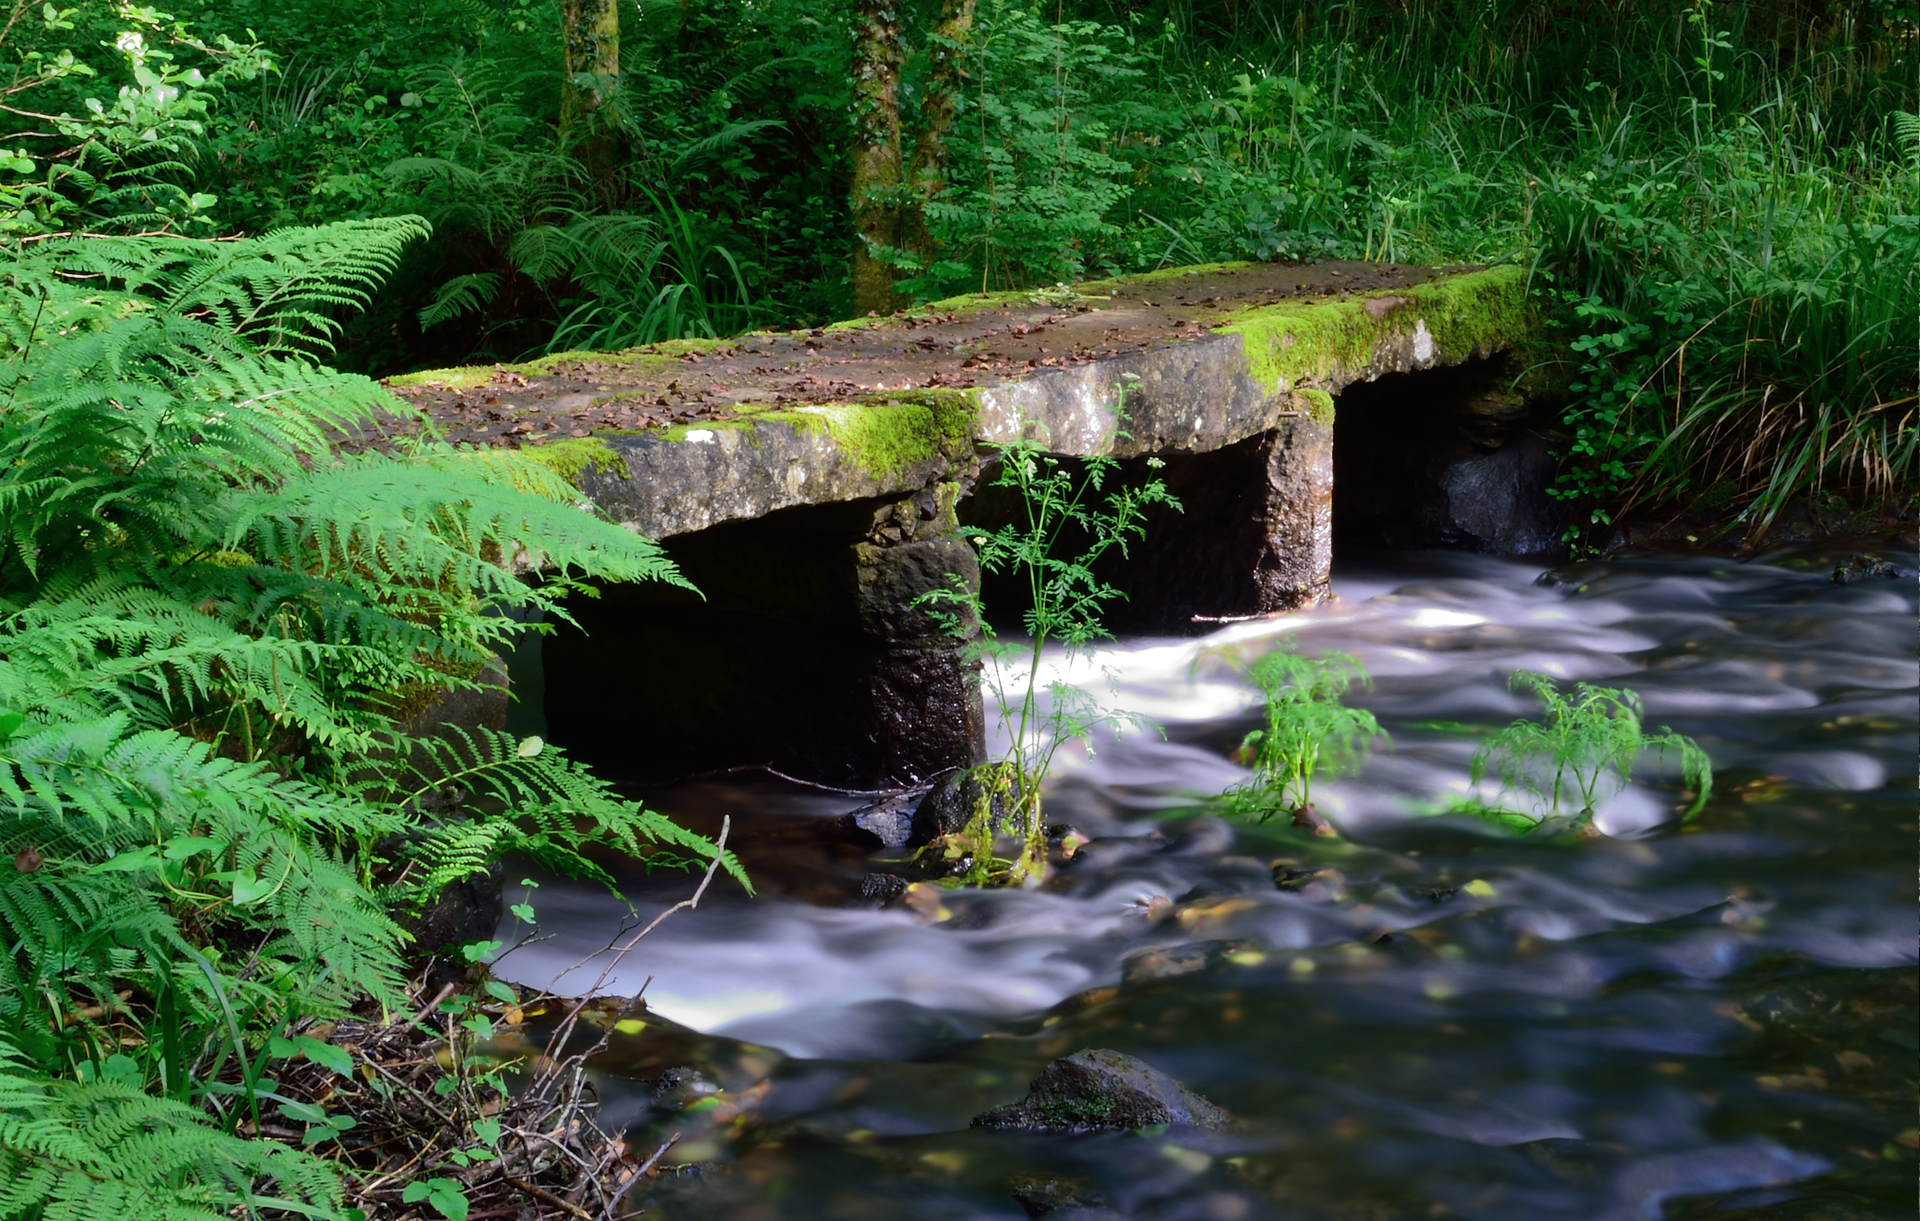 Flowing water   manusfer, fern, forest, moss